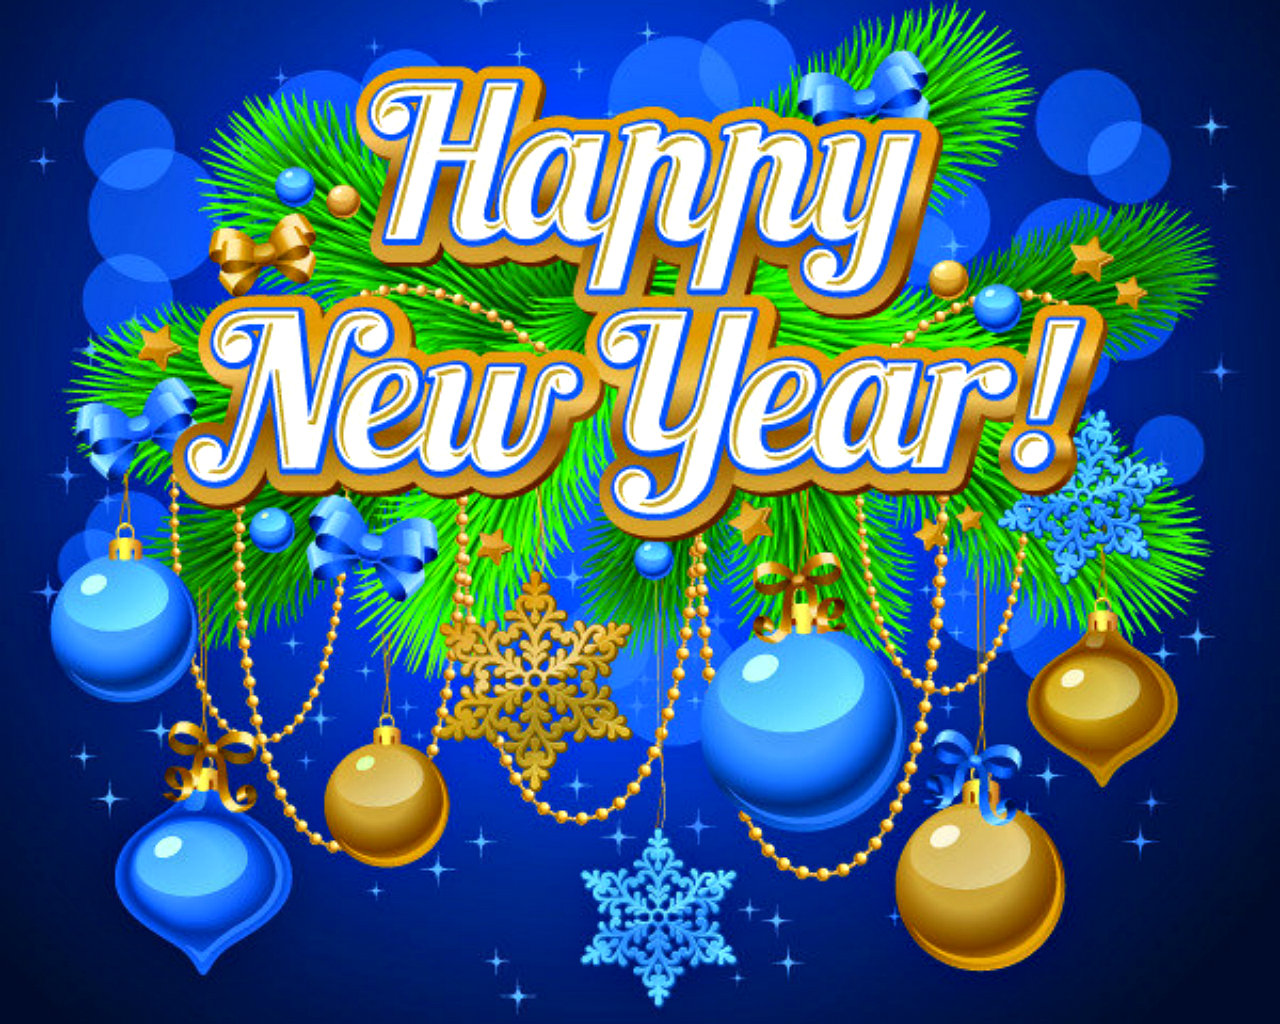 Latest Happy New Year HD Wallpapers Whats app DP Images Photos ...